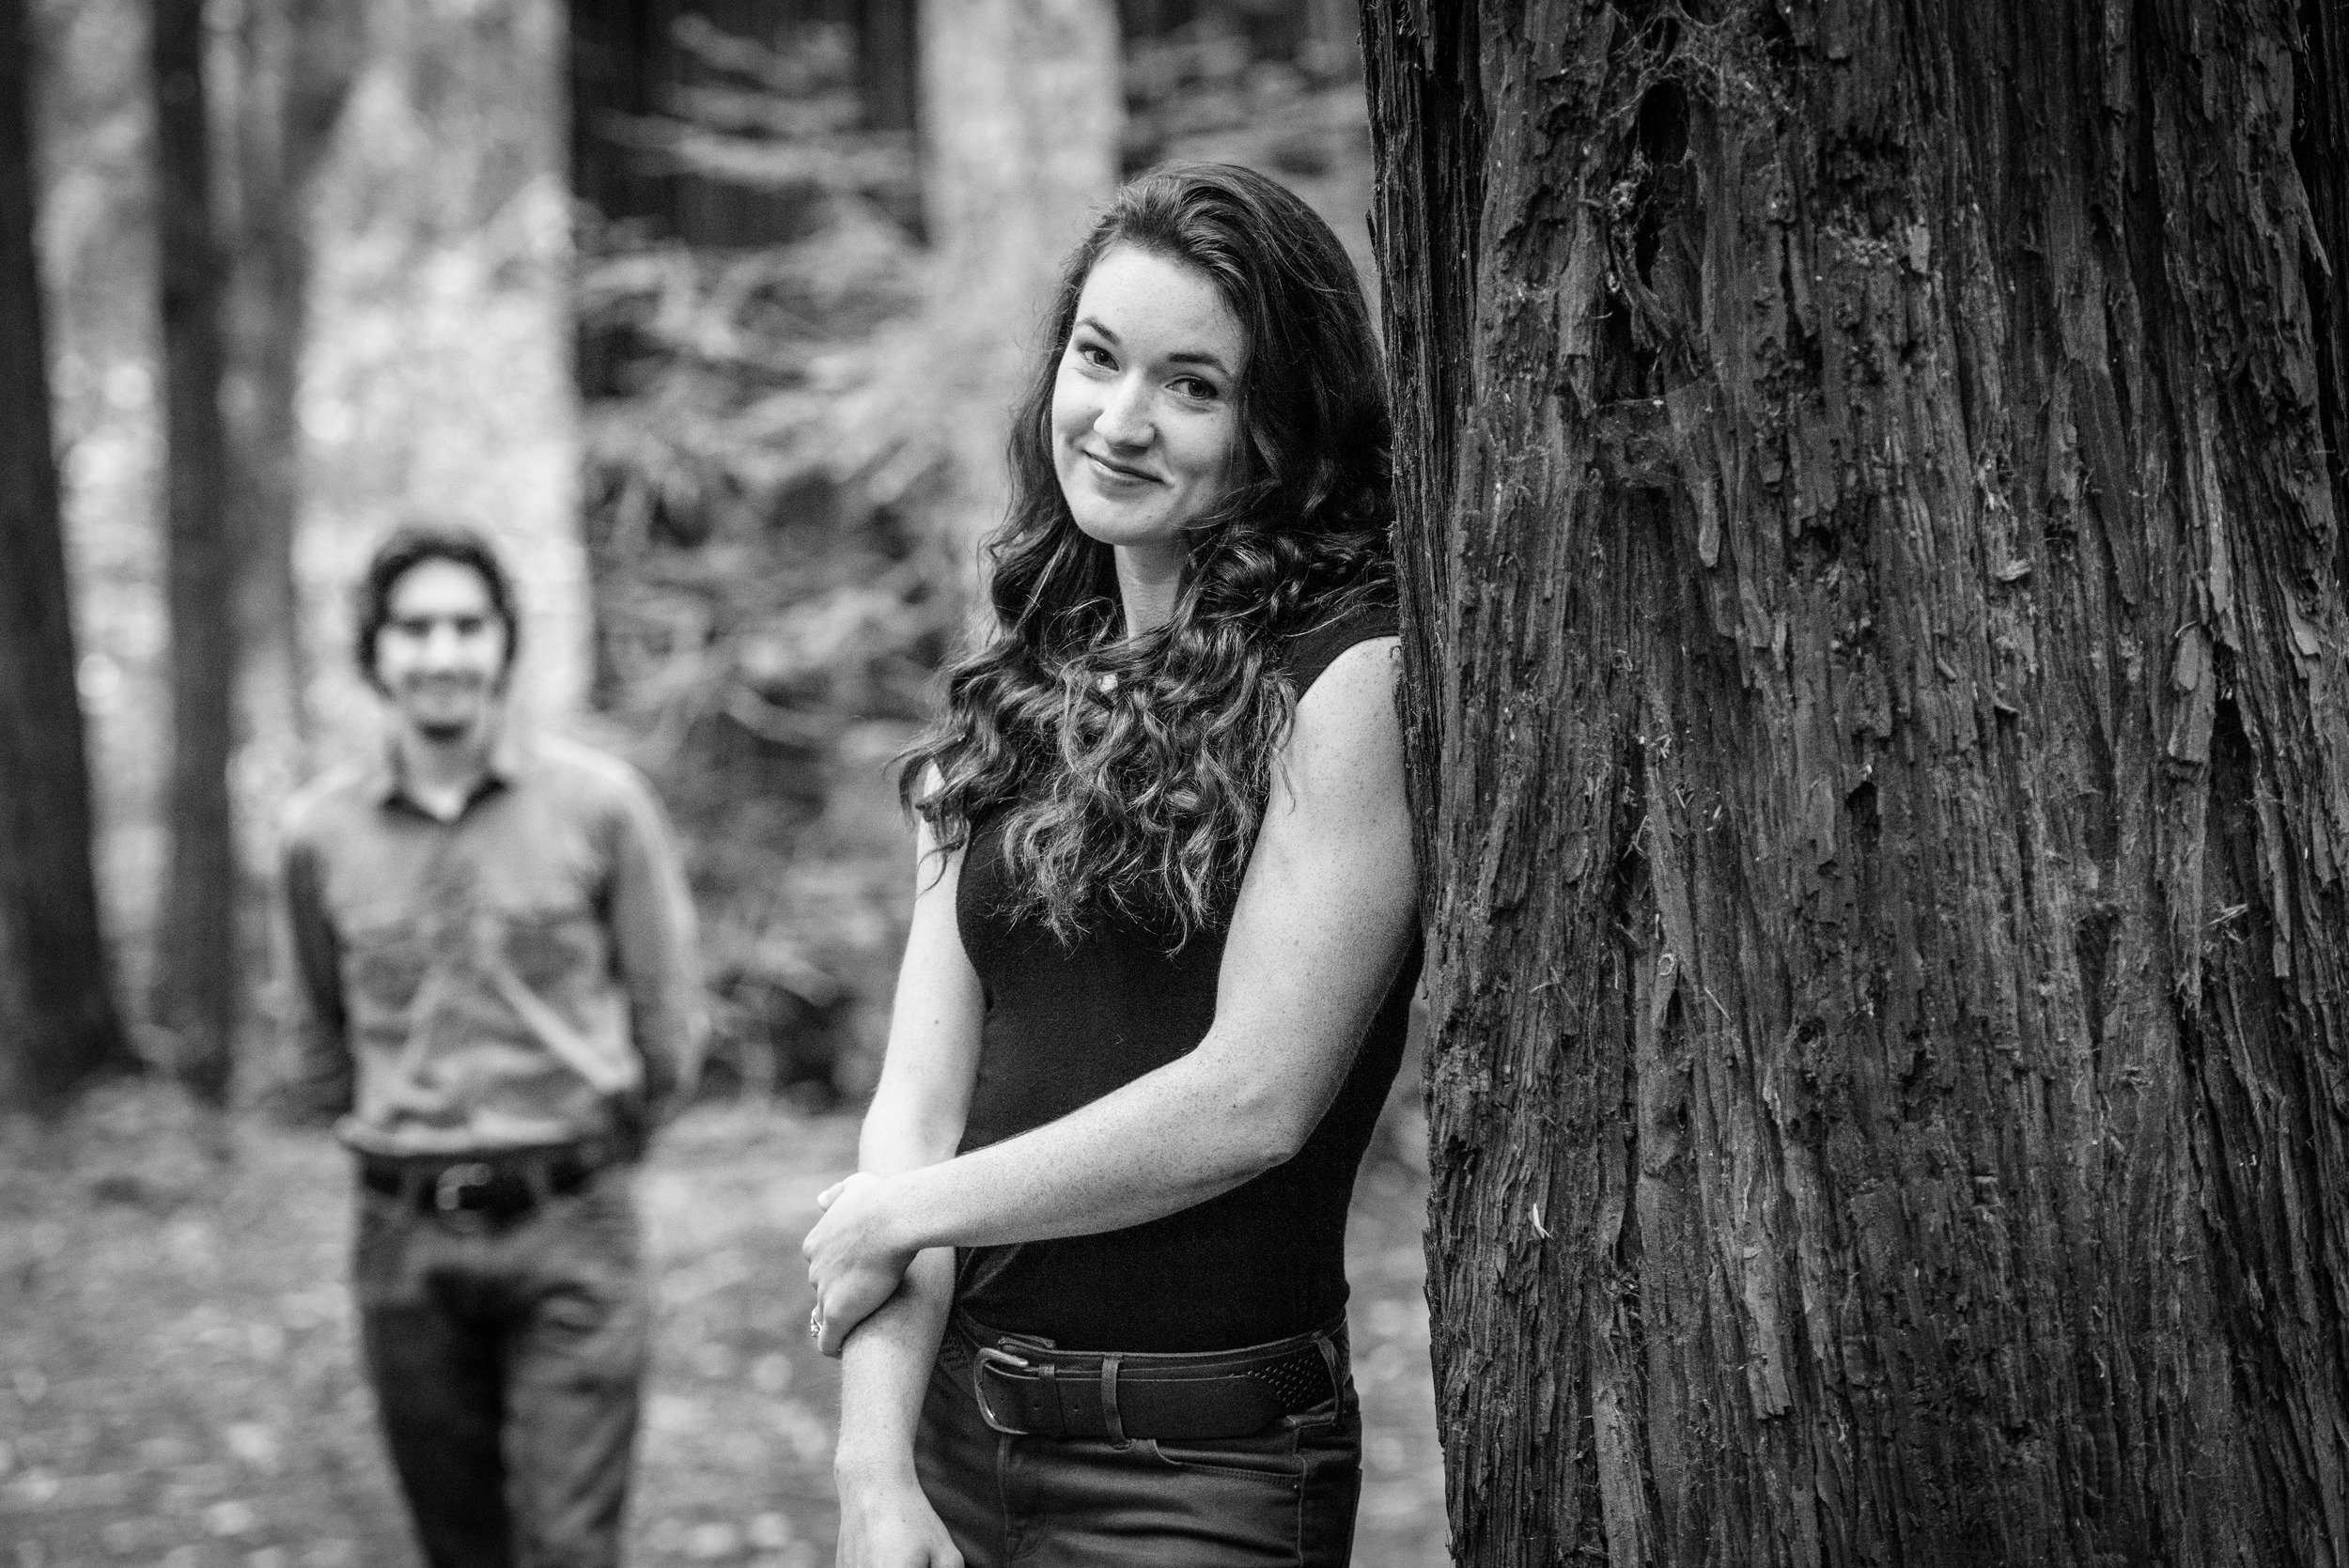 Girl leaning against tree looking at camera with fiance in background - Engagement Photos in Nisene Marks Forest in Aptos, CA - by Bay Area wedding photographer Chris Schmauch